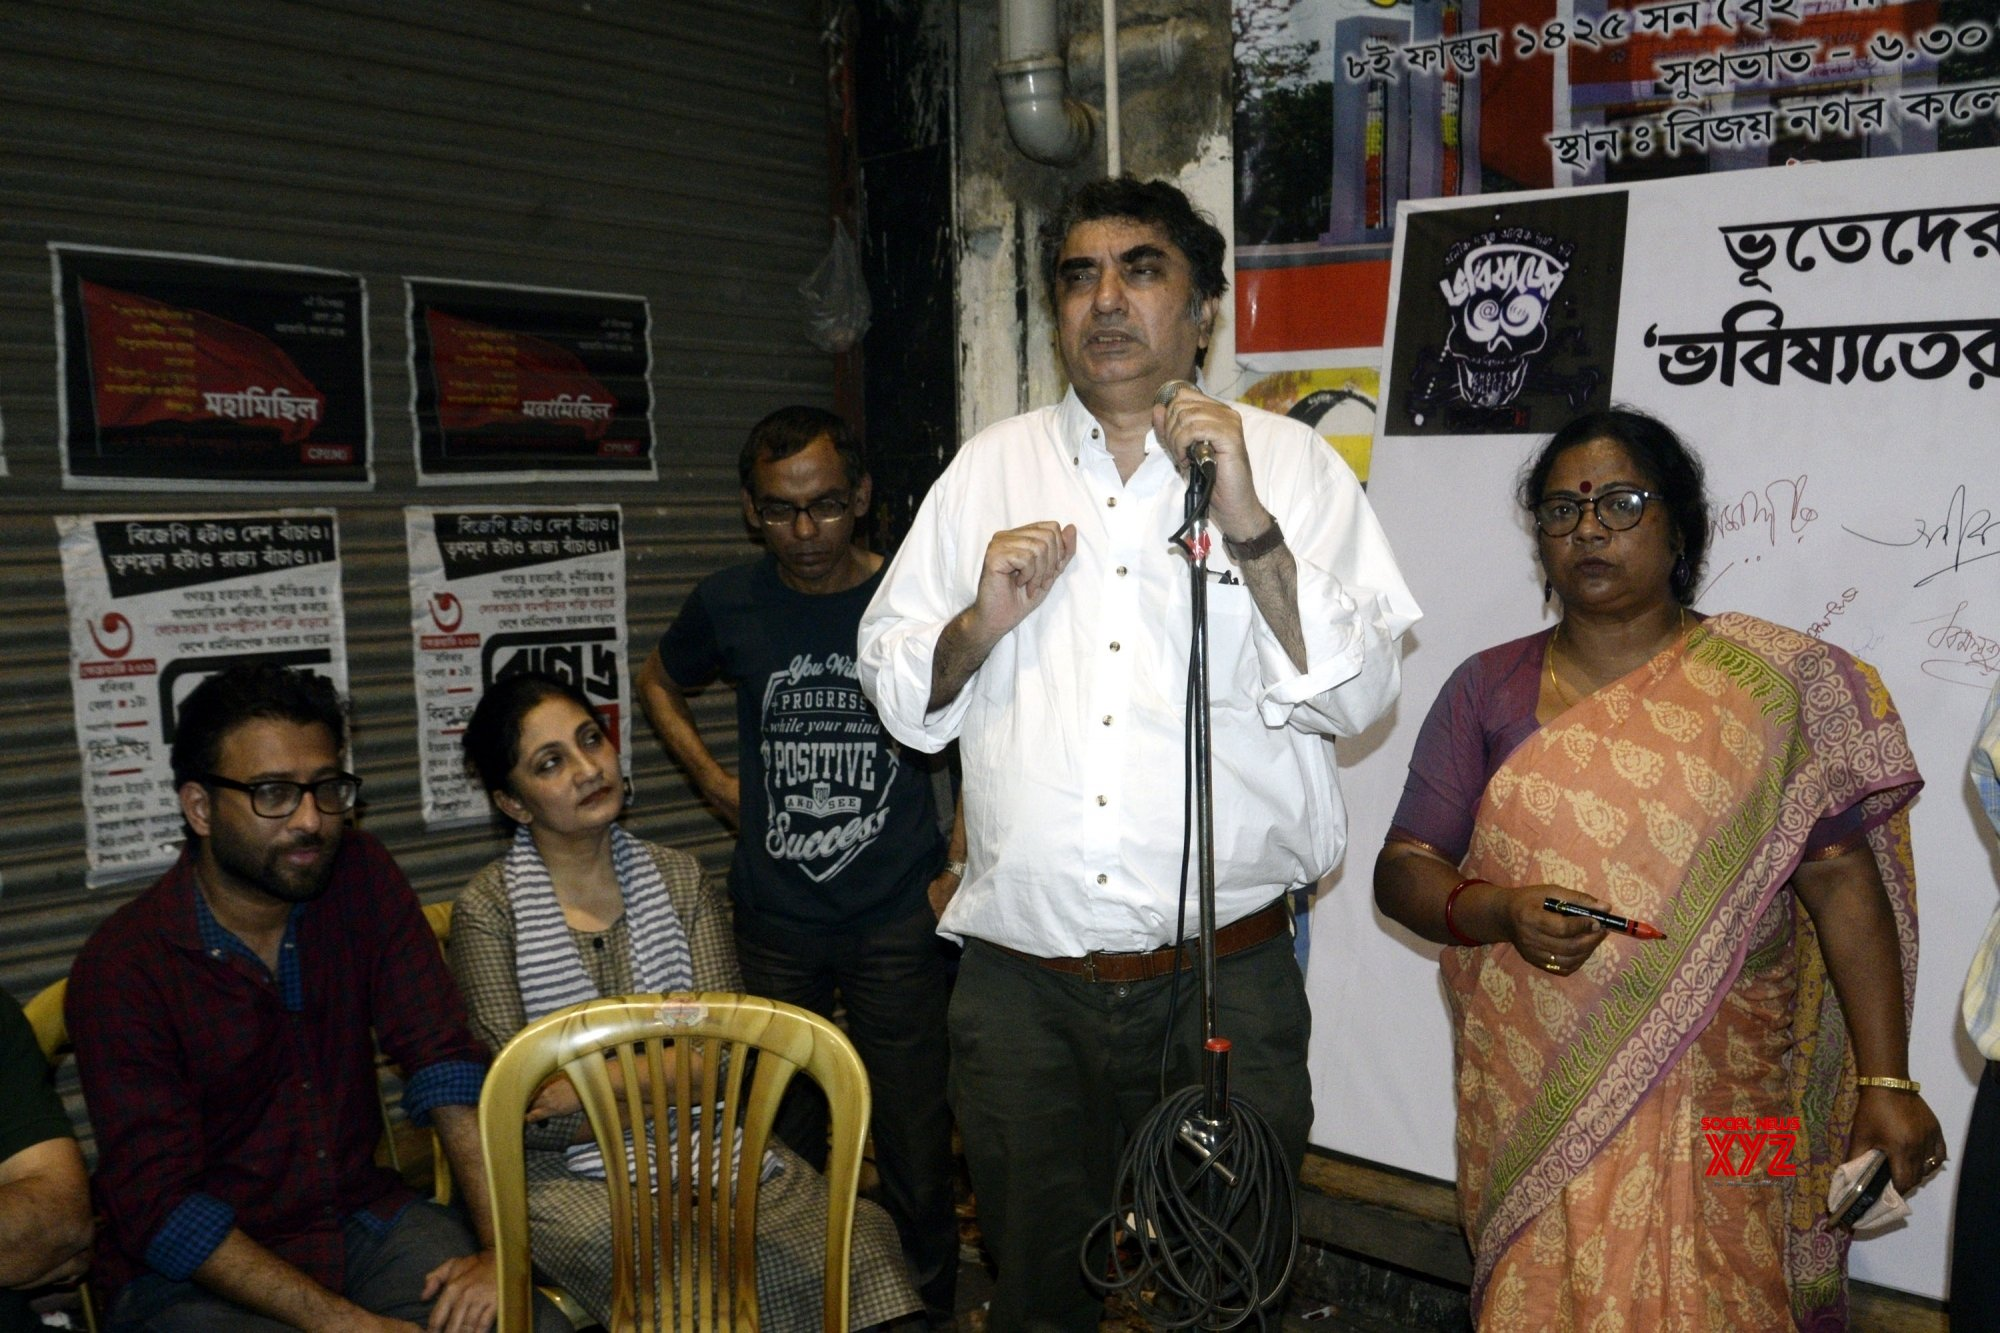 Portrayal of democracy in Bengal grandstanding: Filmmaker